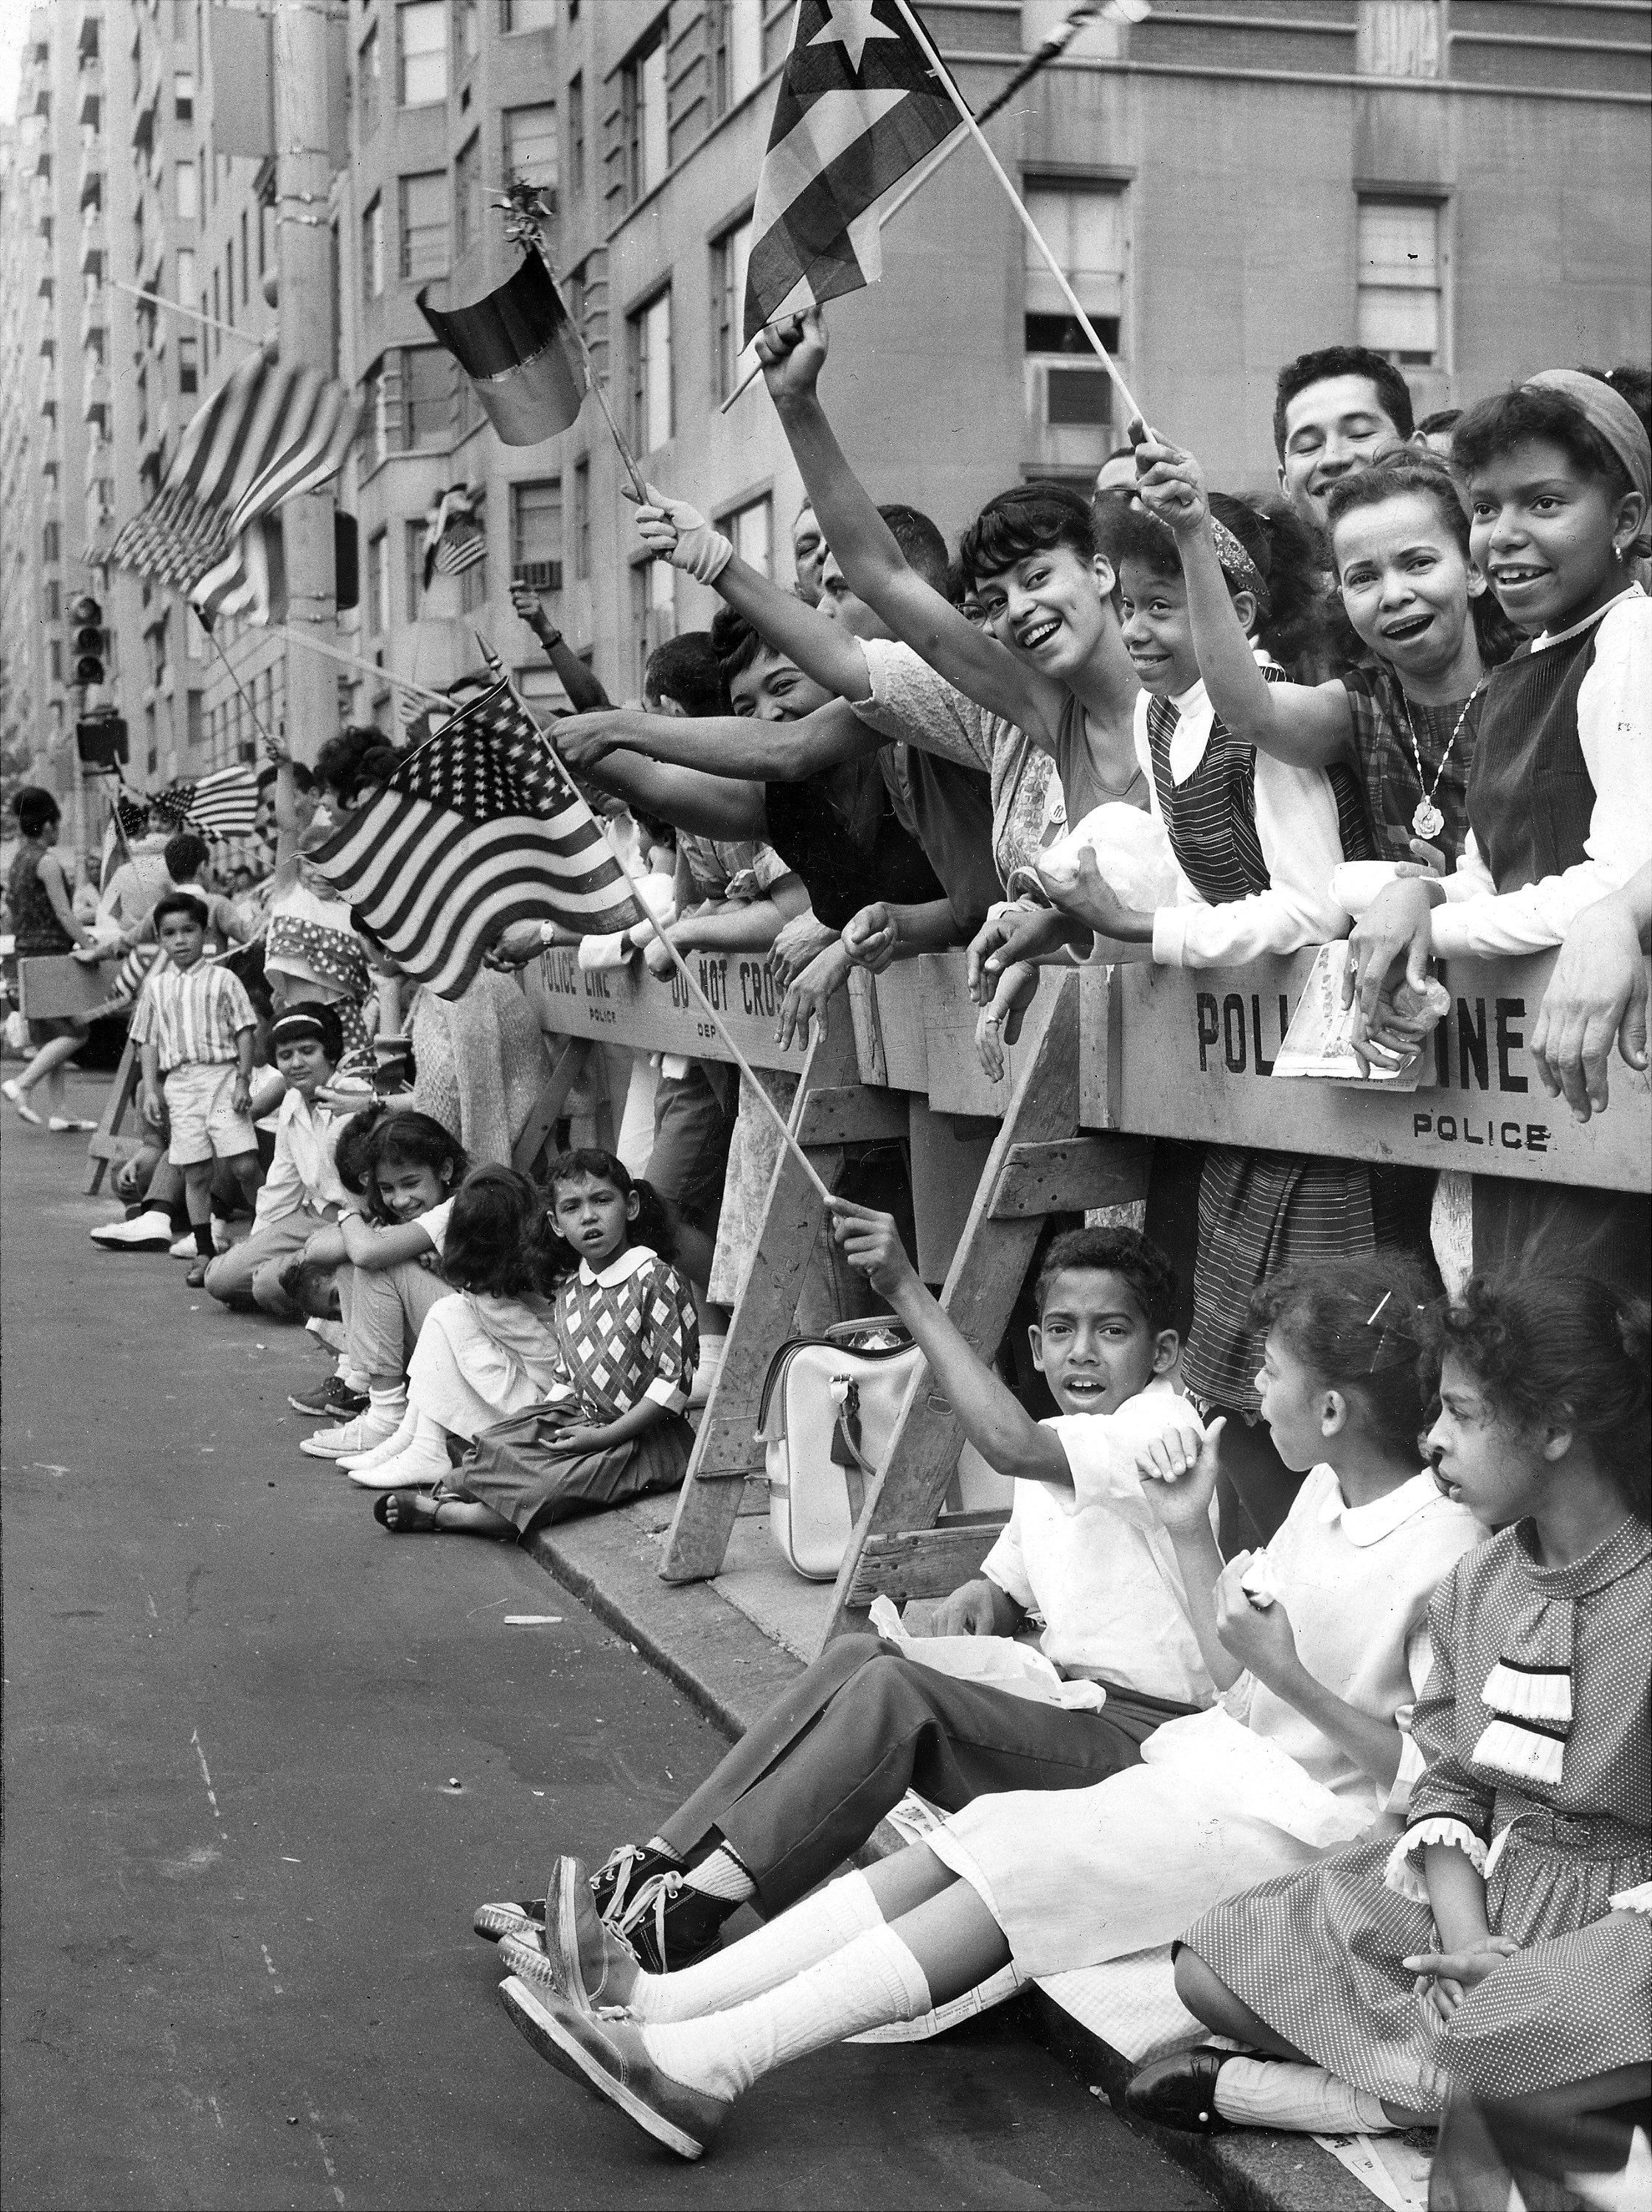 Spectators at the Puerto Rican Day Parade at Fifth Ave. and 66th St. 06/26/1966